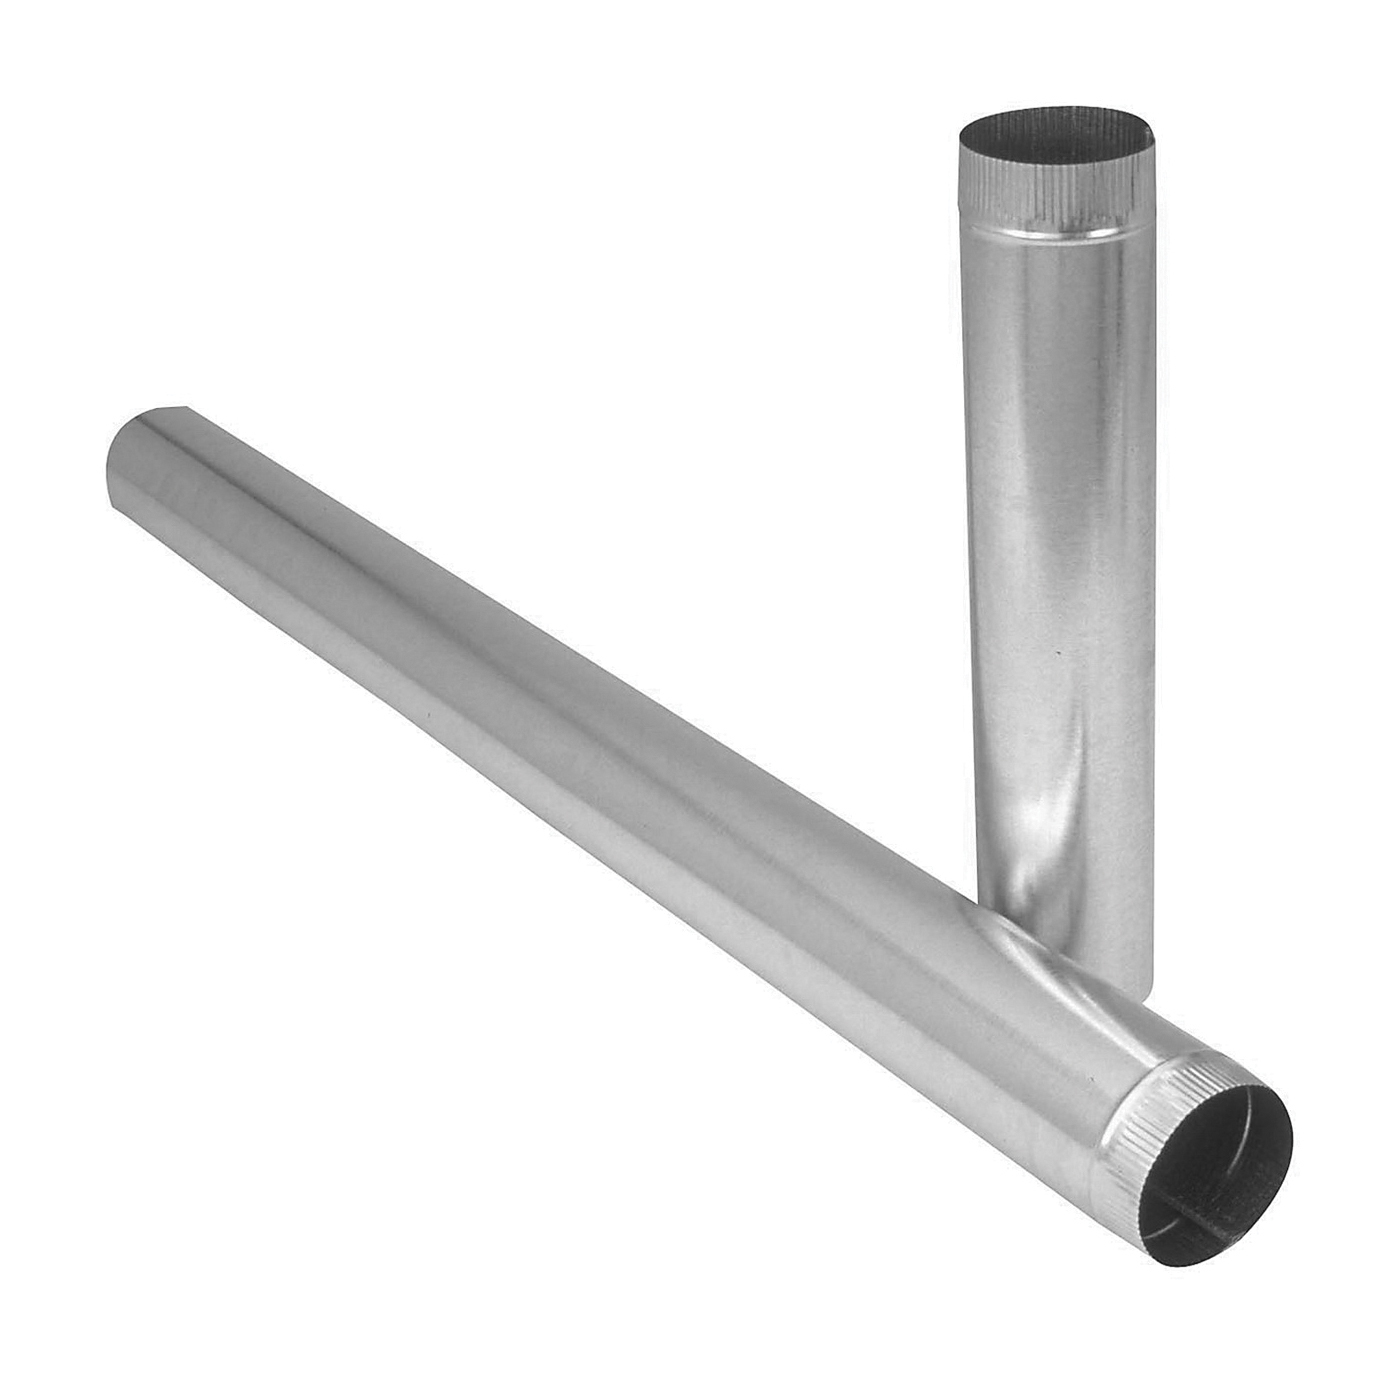 Picture of Imperial GV0367 Duct Pipe, 5 in Dia, 24 in L, 26 Gauge, Galvanized Steel, Galvanized